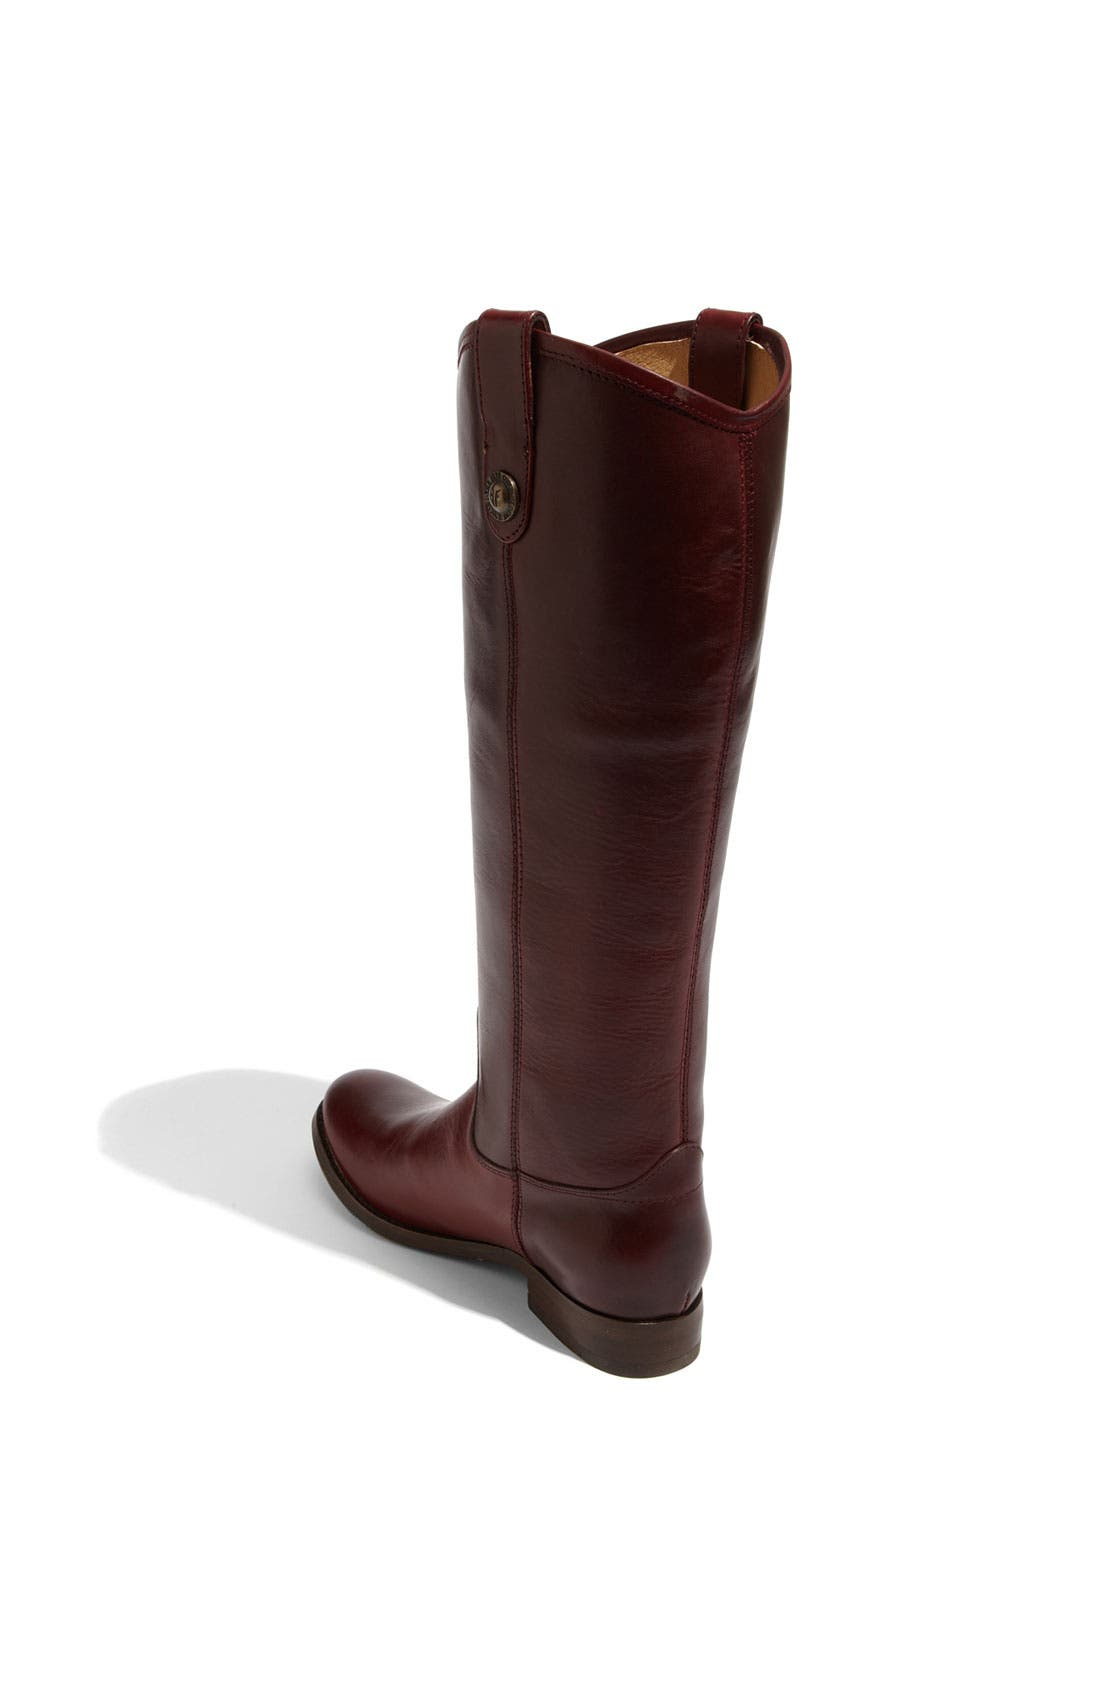 'Melissa Button' Leather Riding Boot,                             Alternate thumbnail 65, color,